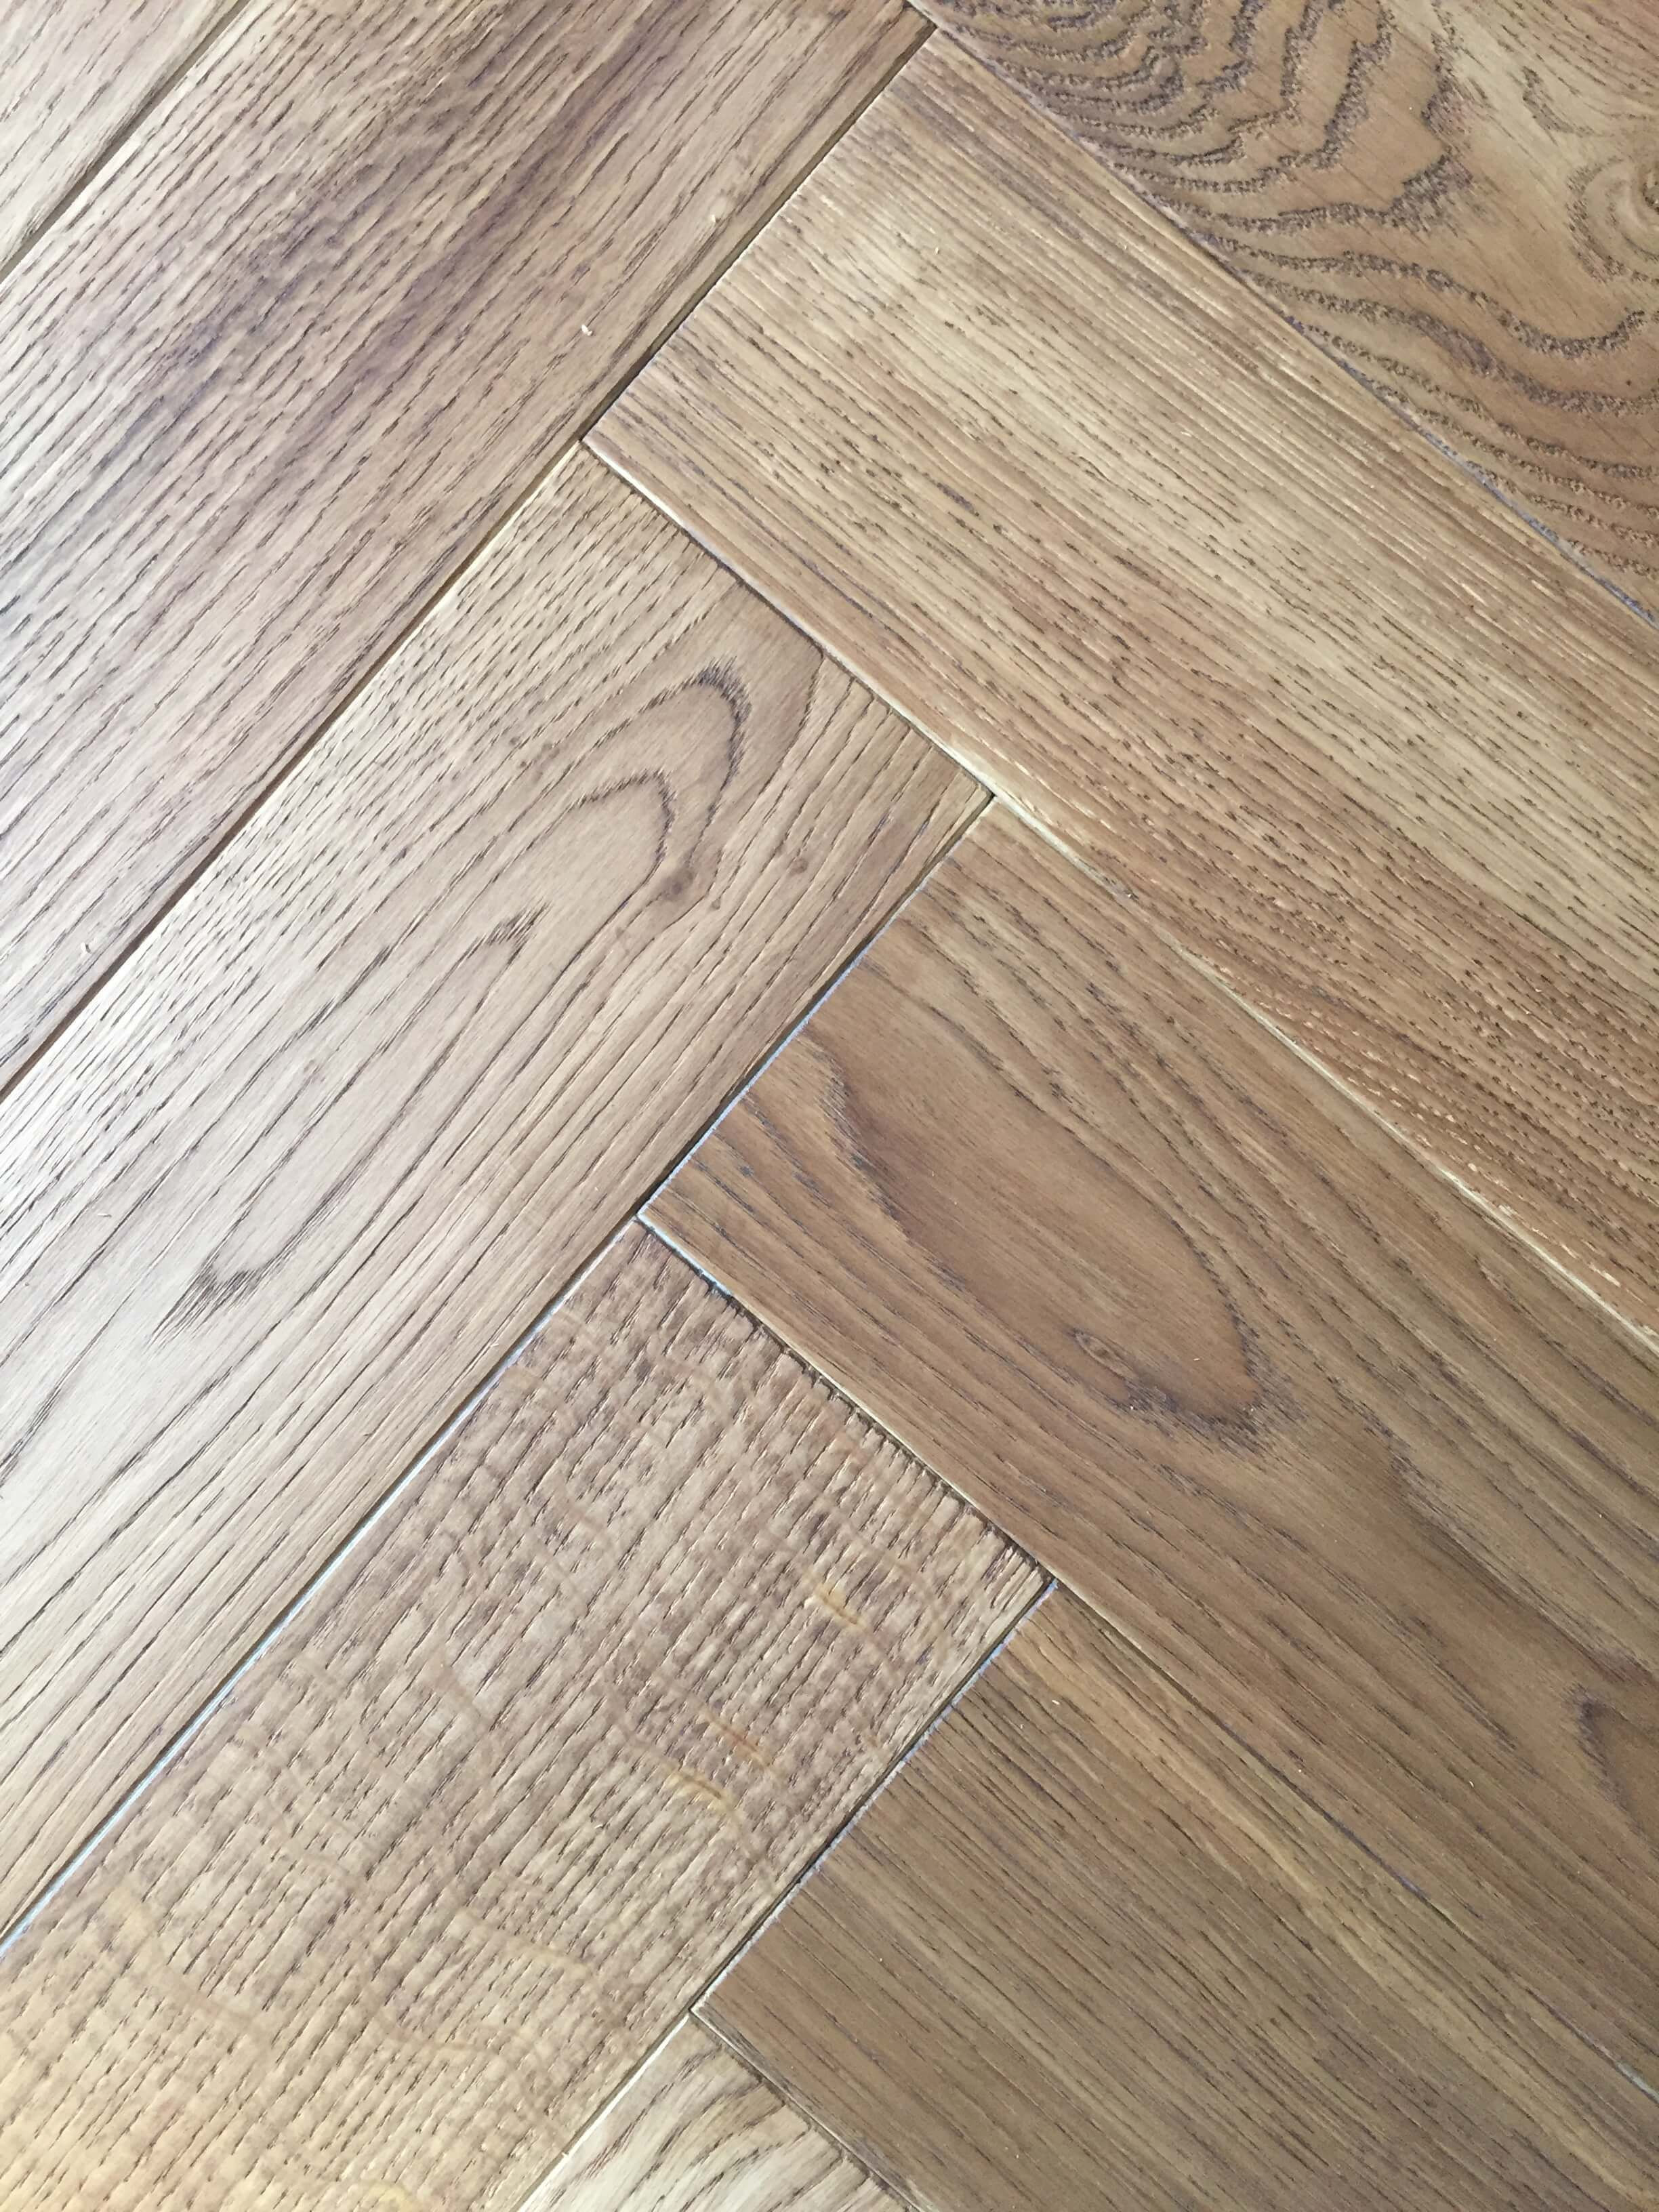 Millstead Vs Bruce Hardwood Flooring Of Fascinating Engineered Wood Furniture In Duchateau Fine Sawn Ebony with Awesome Engineered Wood Furniture or Real Wood Flooring Measuring for Engineered Wood Flooring Floor